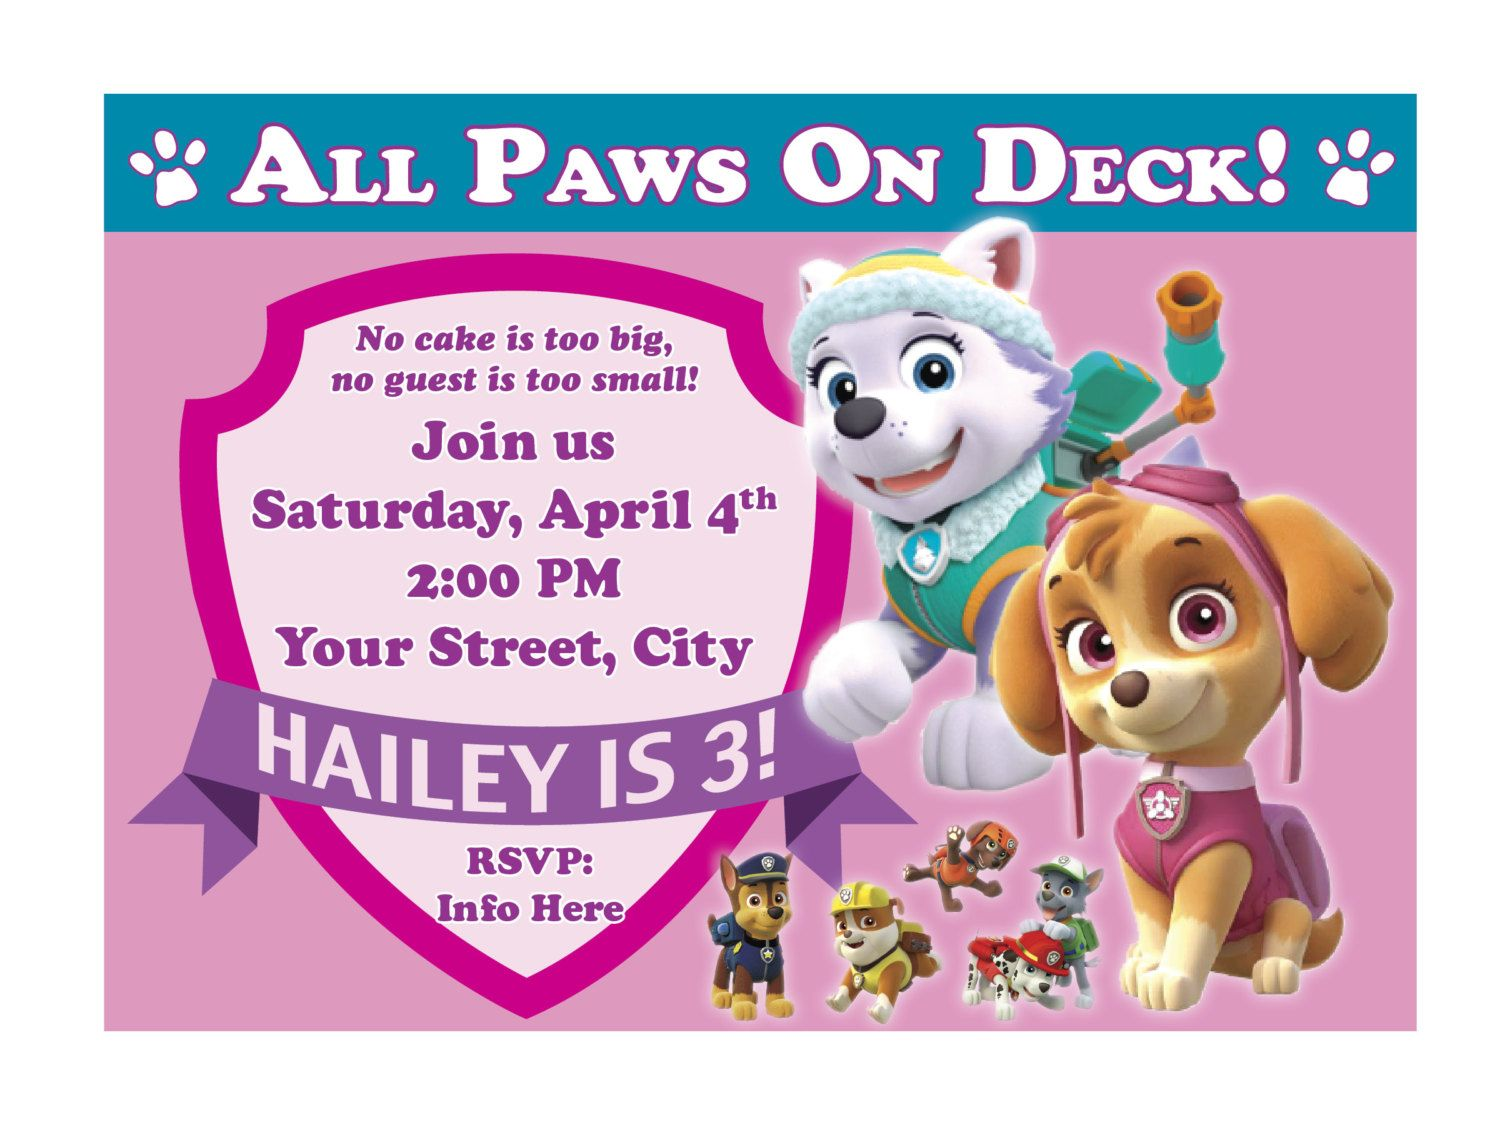 How To Paw Patrol Birthday Invites Graceful Appearance Paw Patrol Birthday Invita Paw Patrol Birthday Invitations Paw Patrol Invitations Paw Patrol Birthday